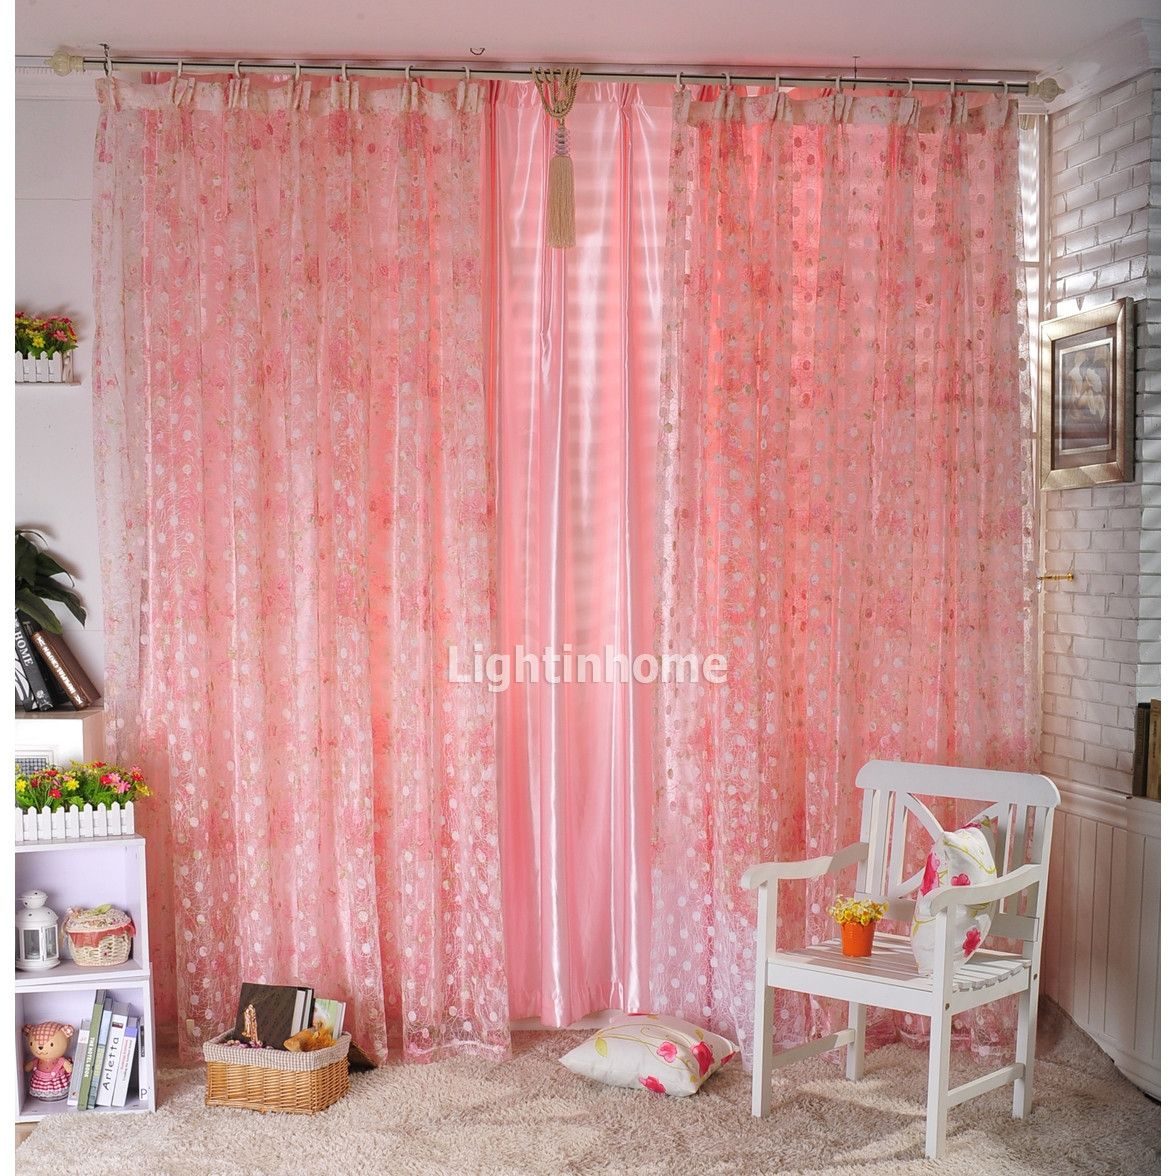 Sweet Bedroom Designs With Pink Curtain For Girls Gorgeous White